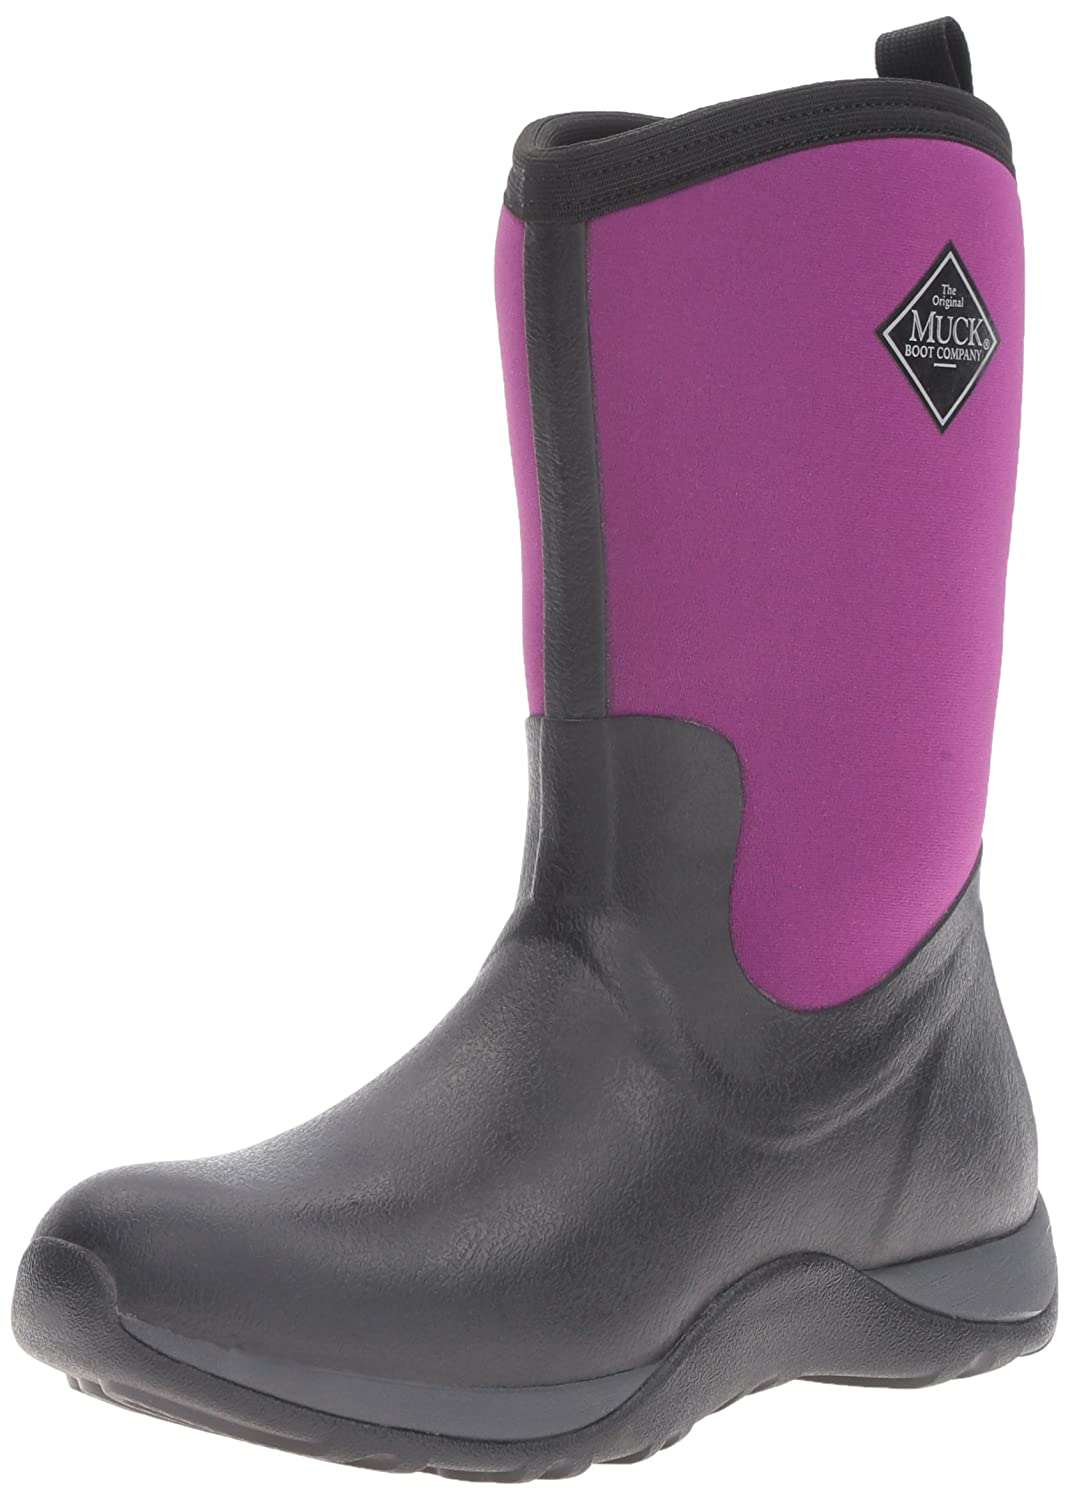 Muck Boot Women's Arctic Weekend Mid Snow B01LXV3RTZ 7 B(M) US|Black/Phlox Purple